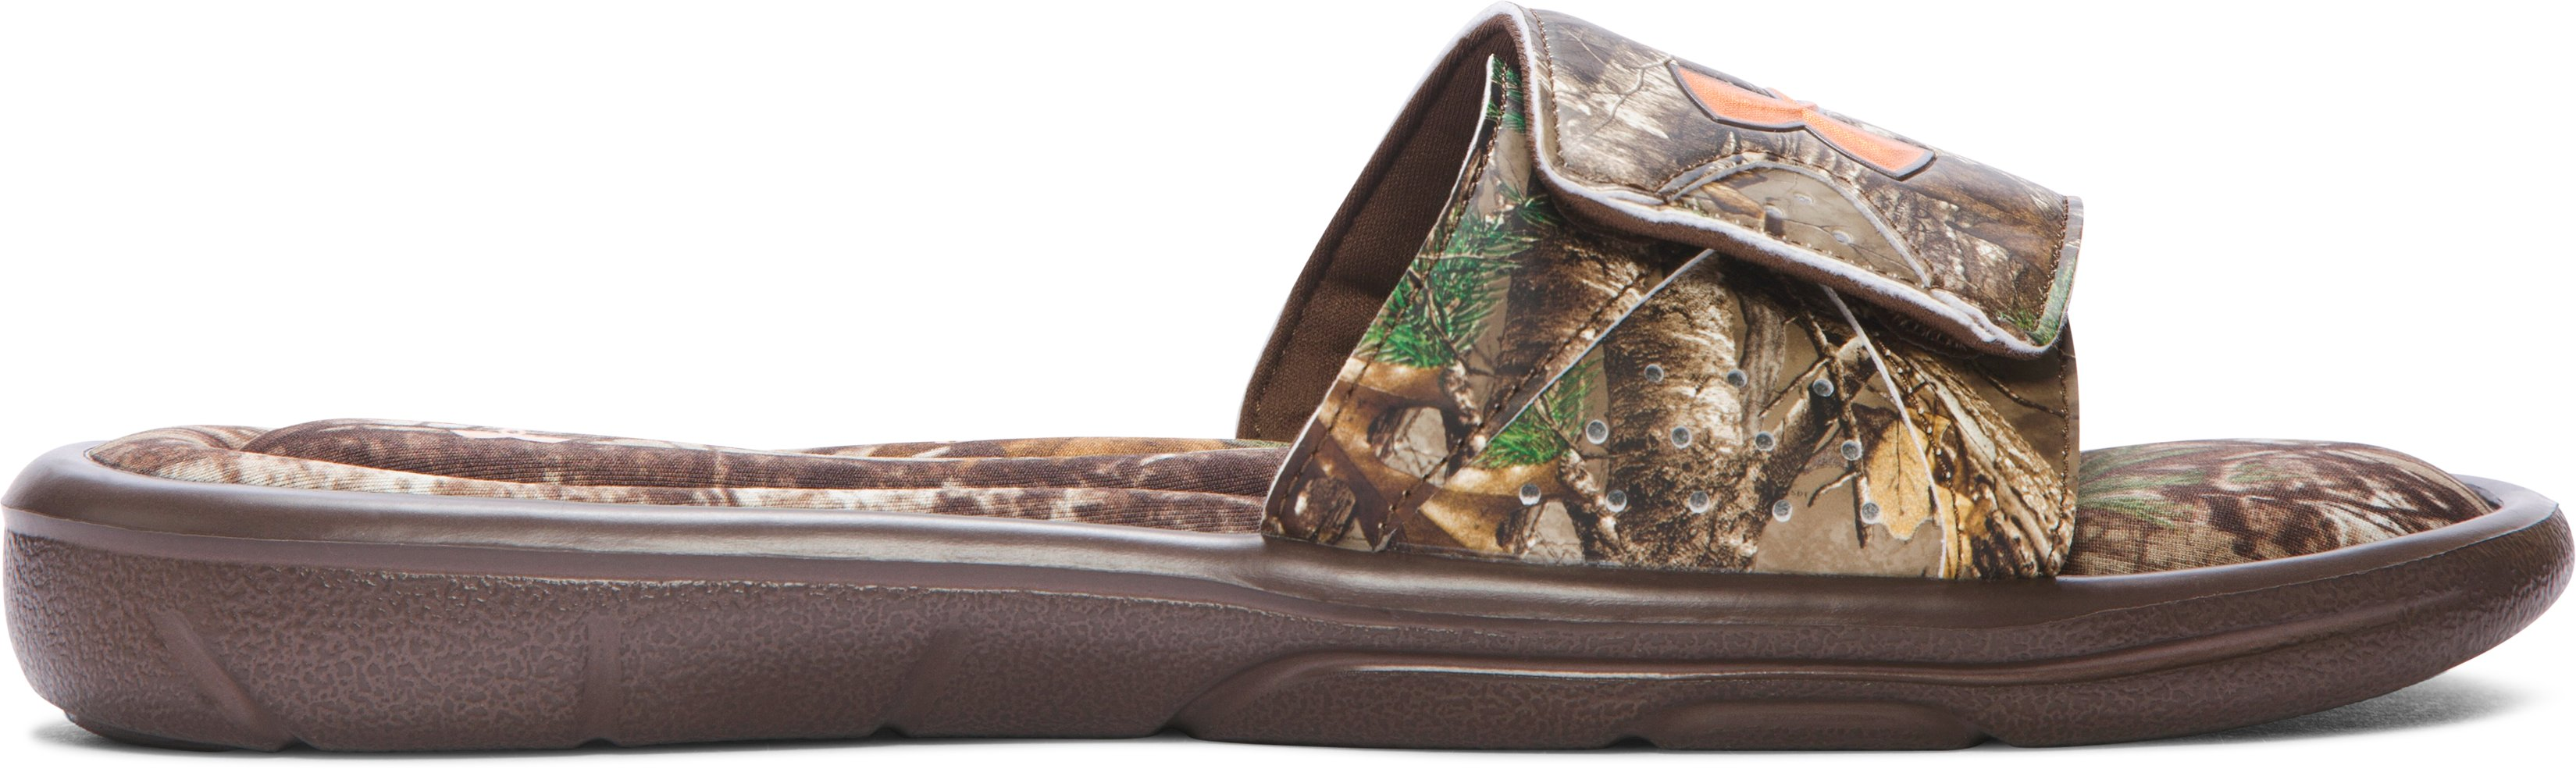 Men's UA Ignite Camo Slide Sandals, REALTREE AP-XTRA,